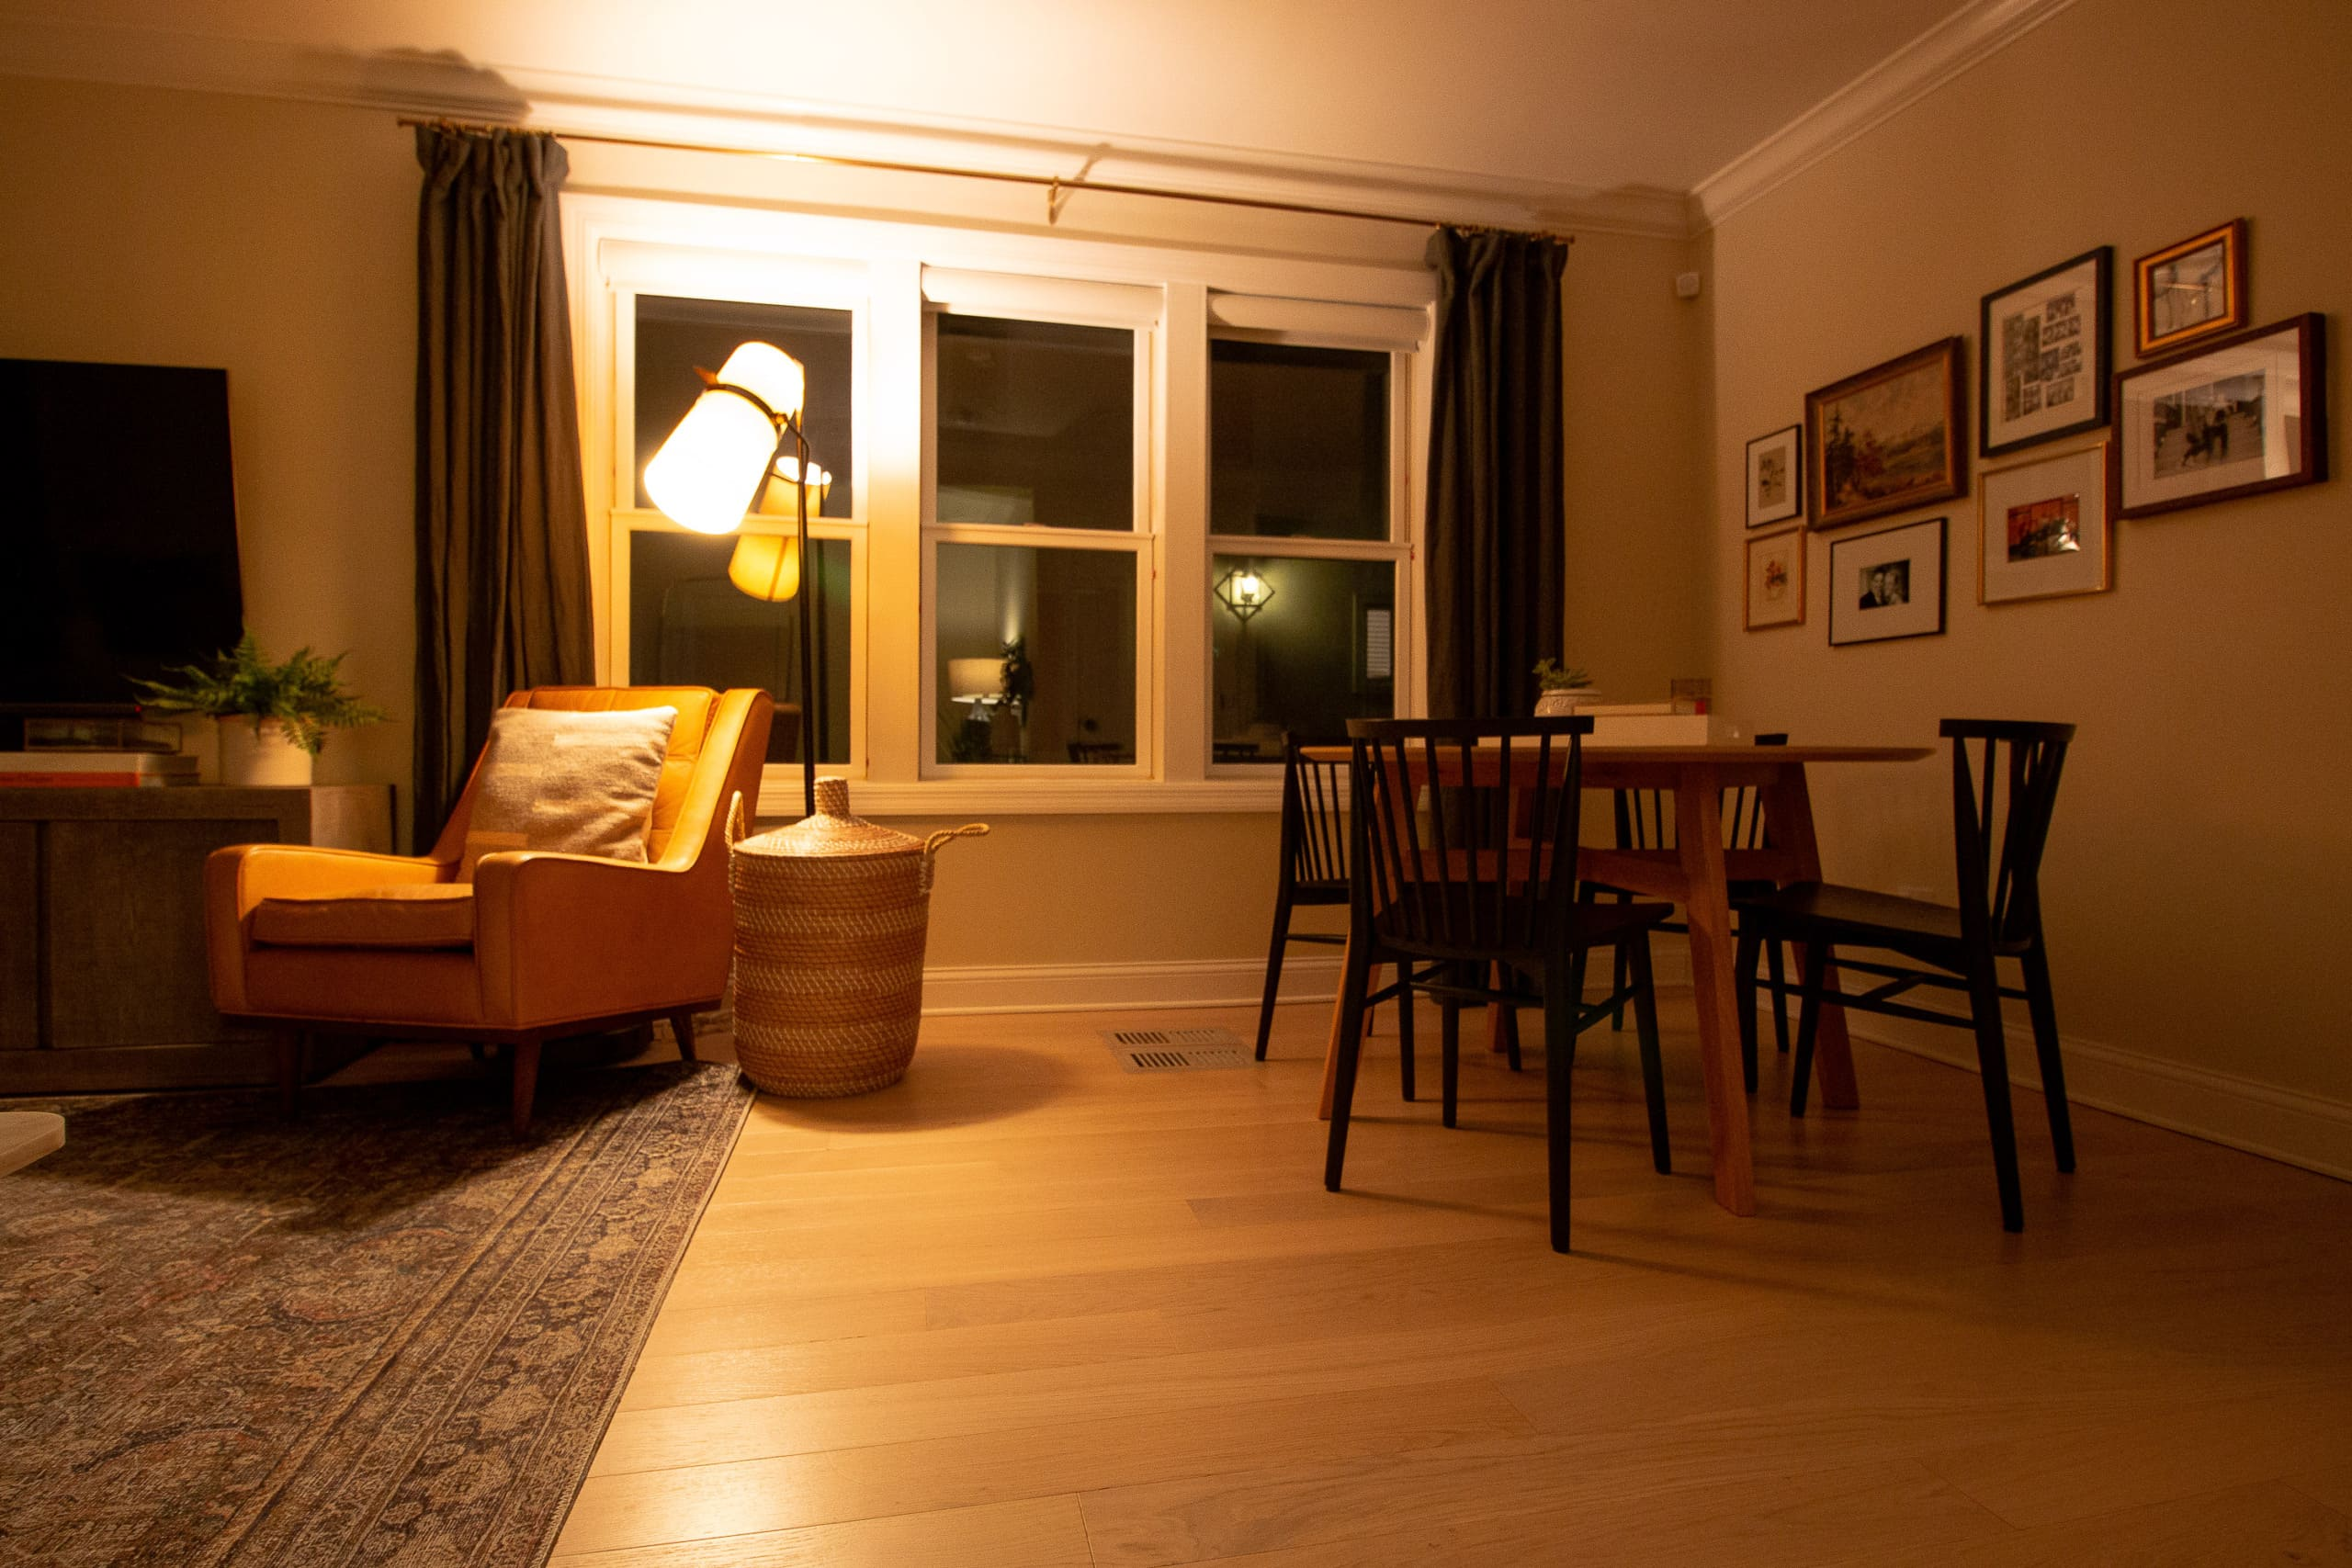 Our living room at night